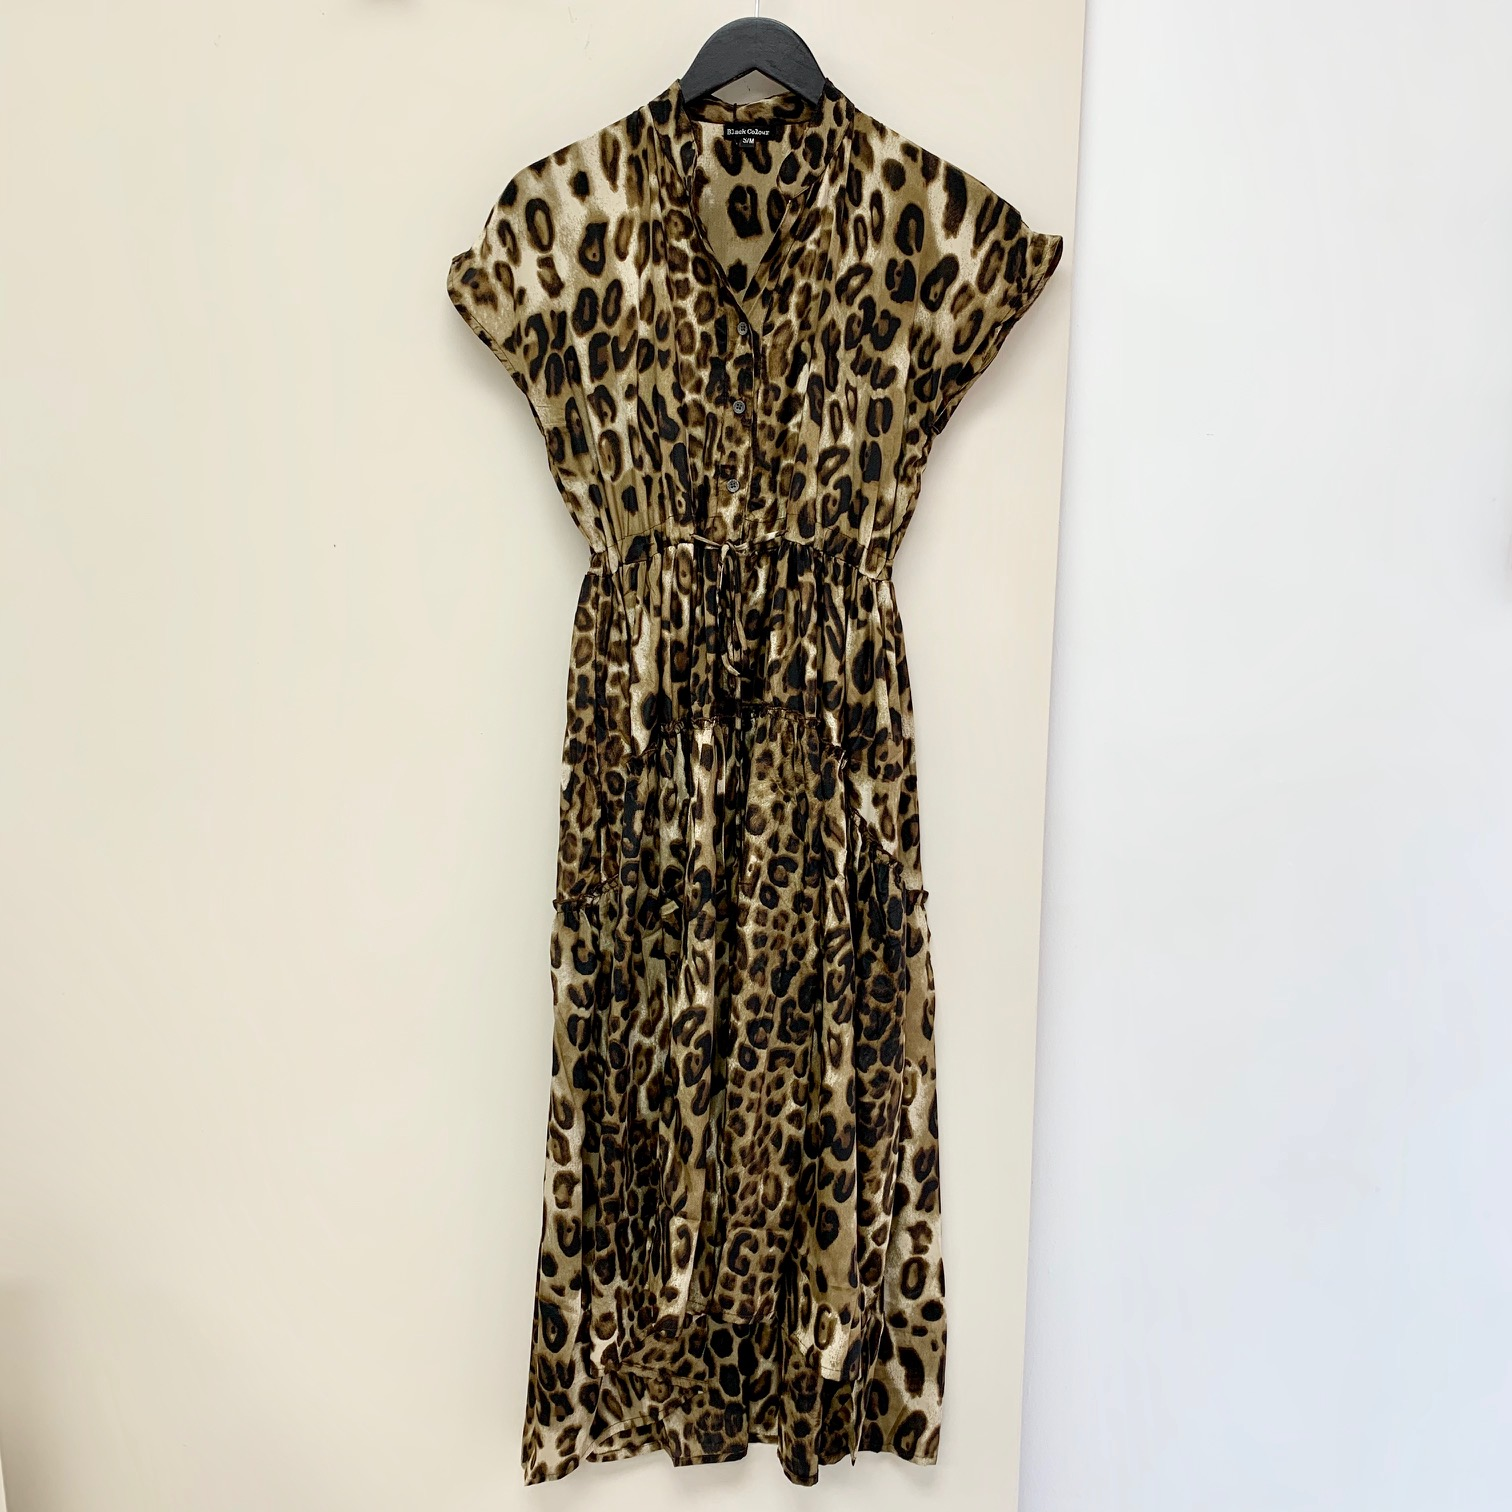 Luna Mae Leopard Dress